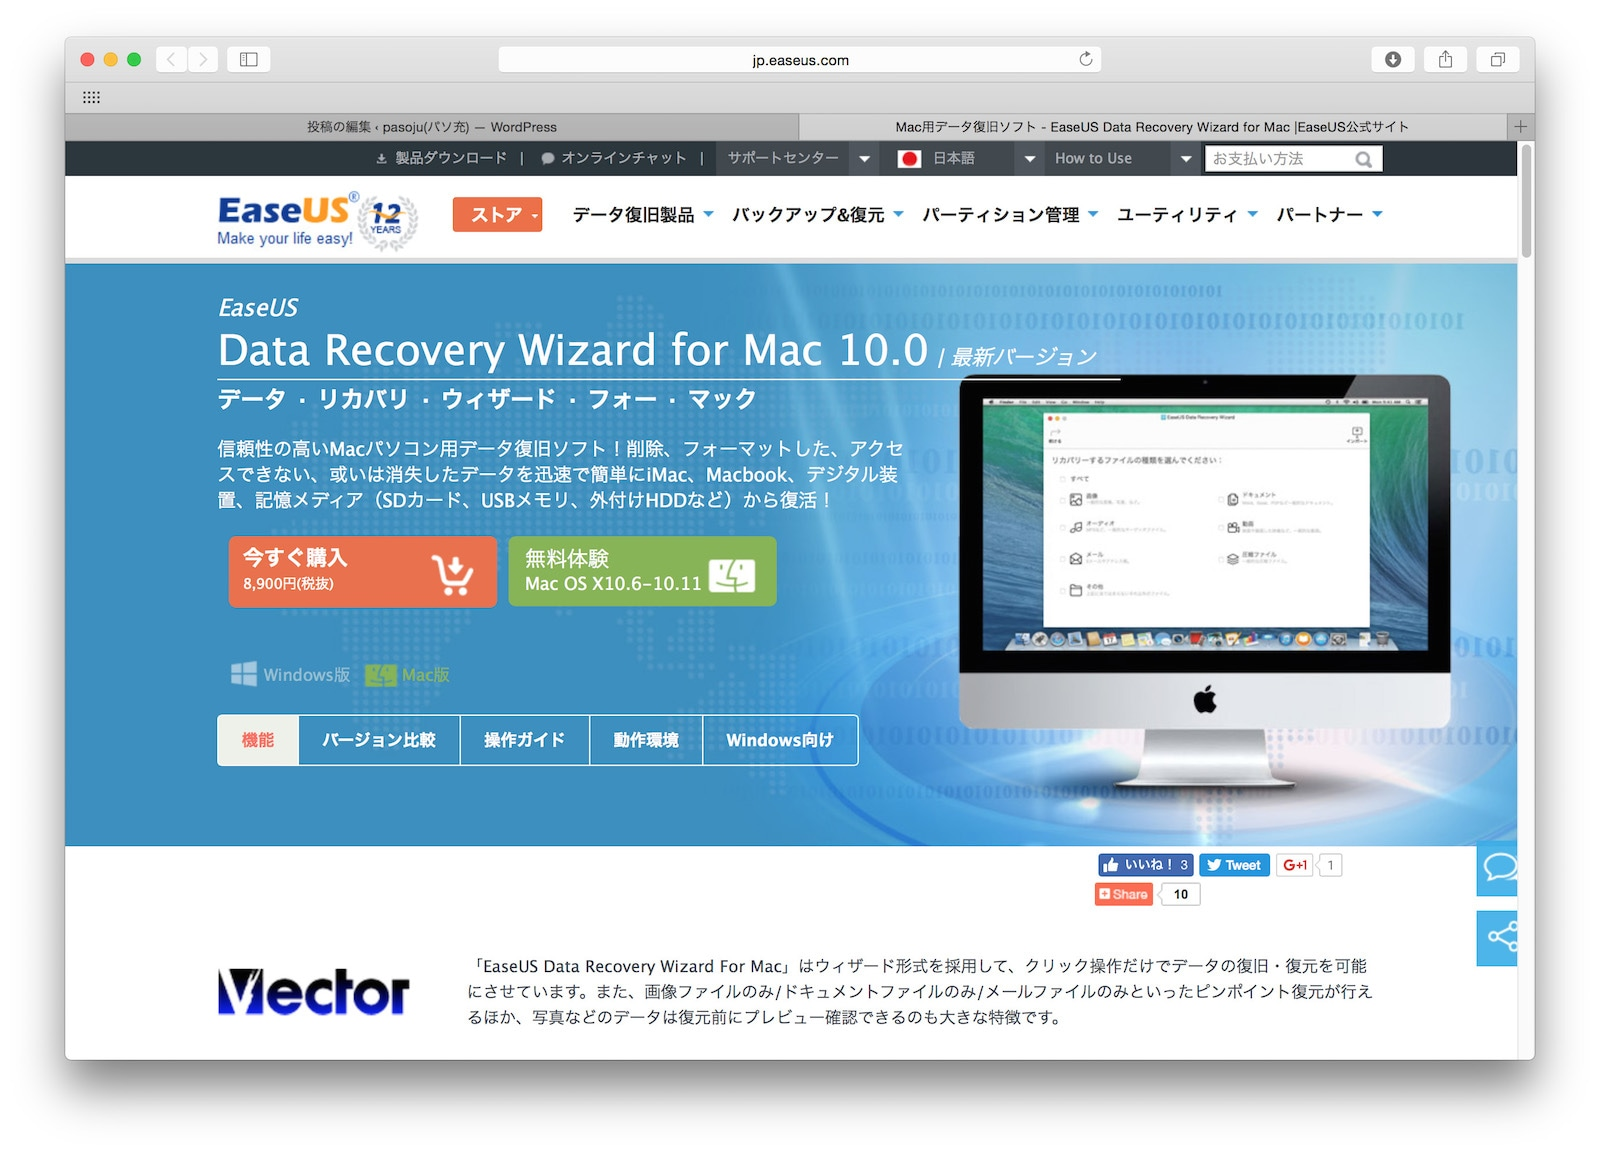 data-recovery-wizard-for-mac-website